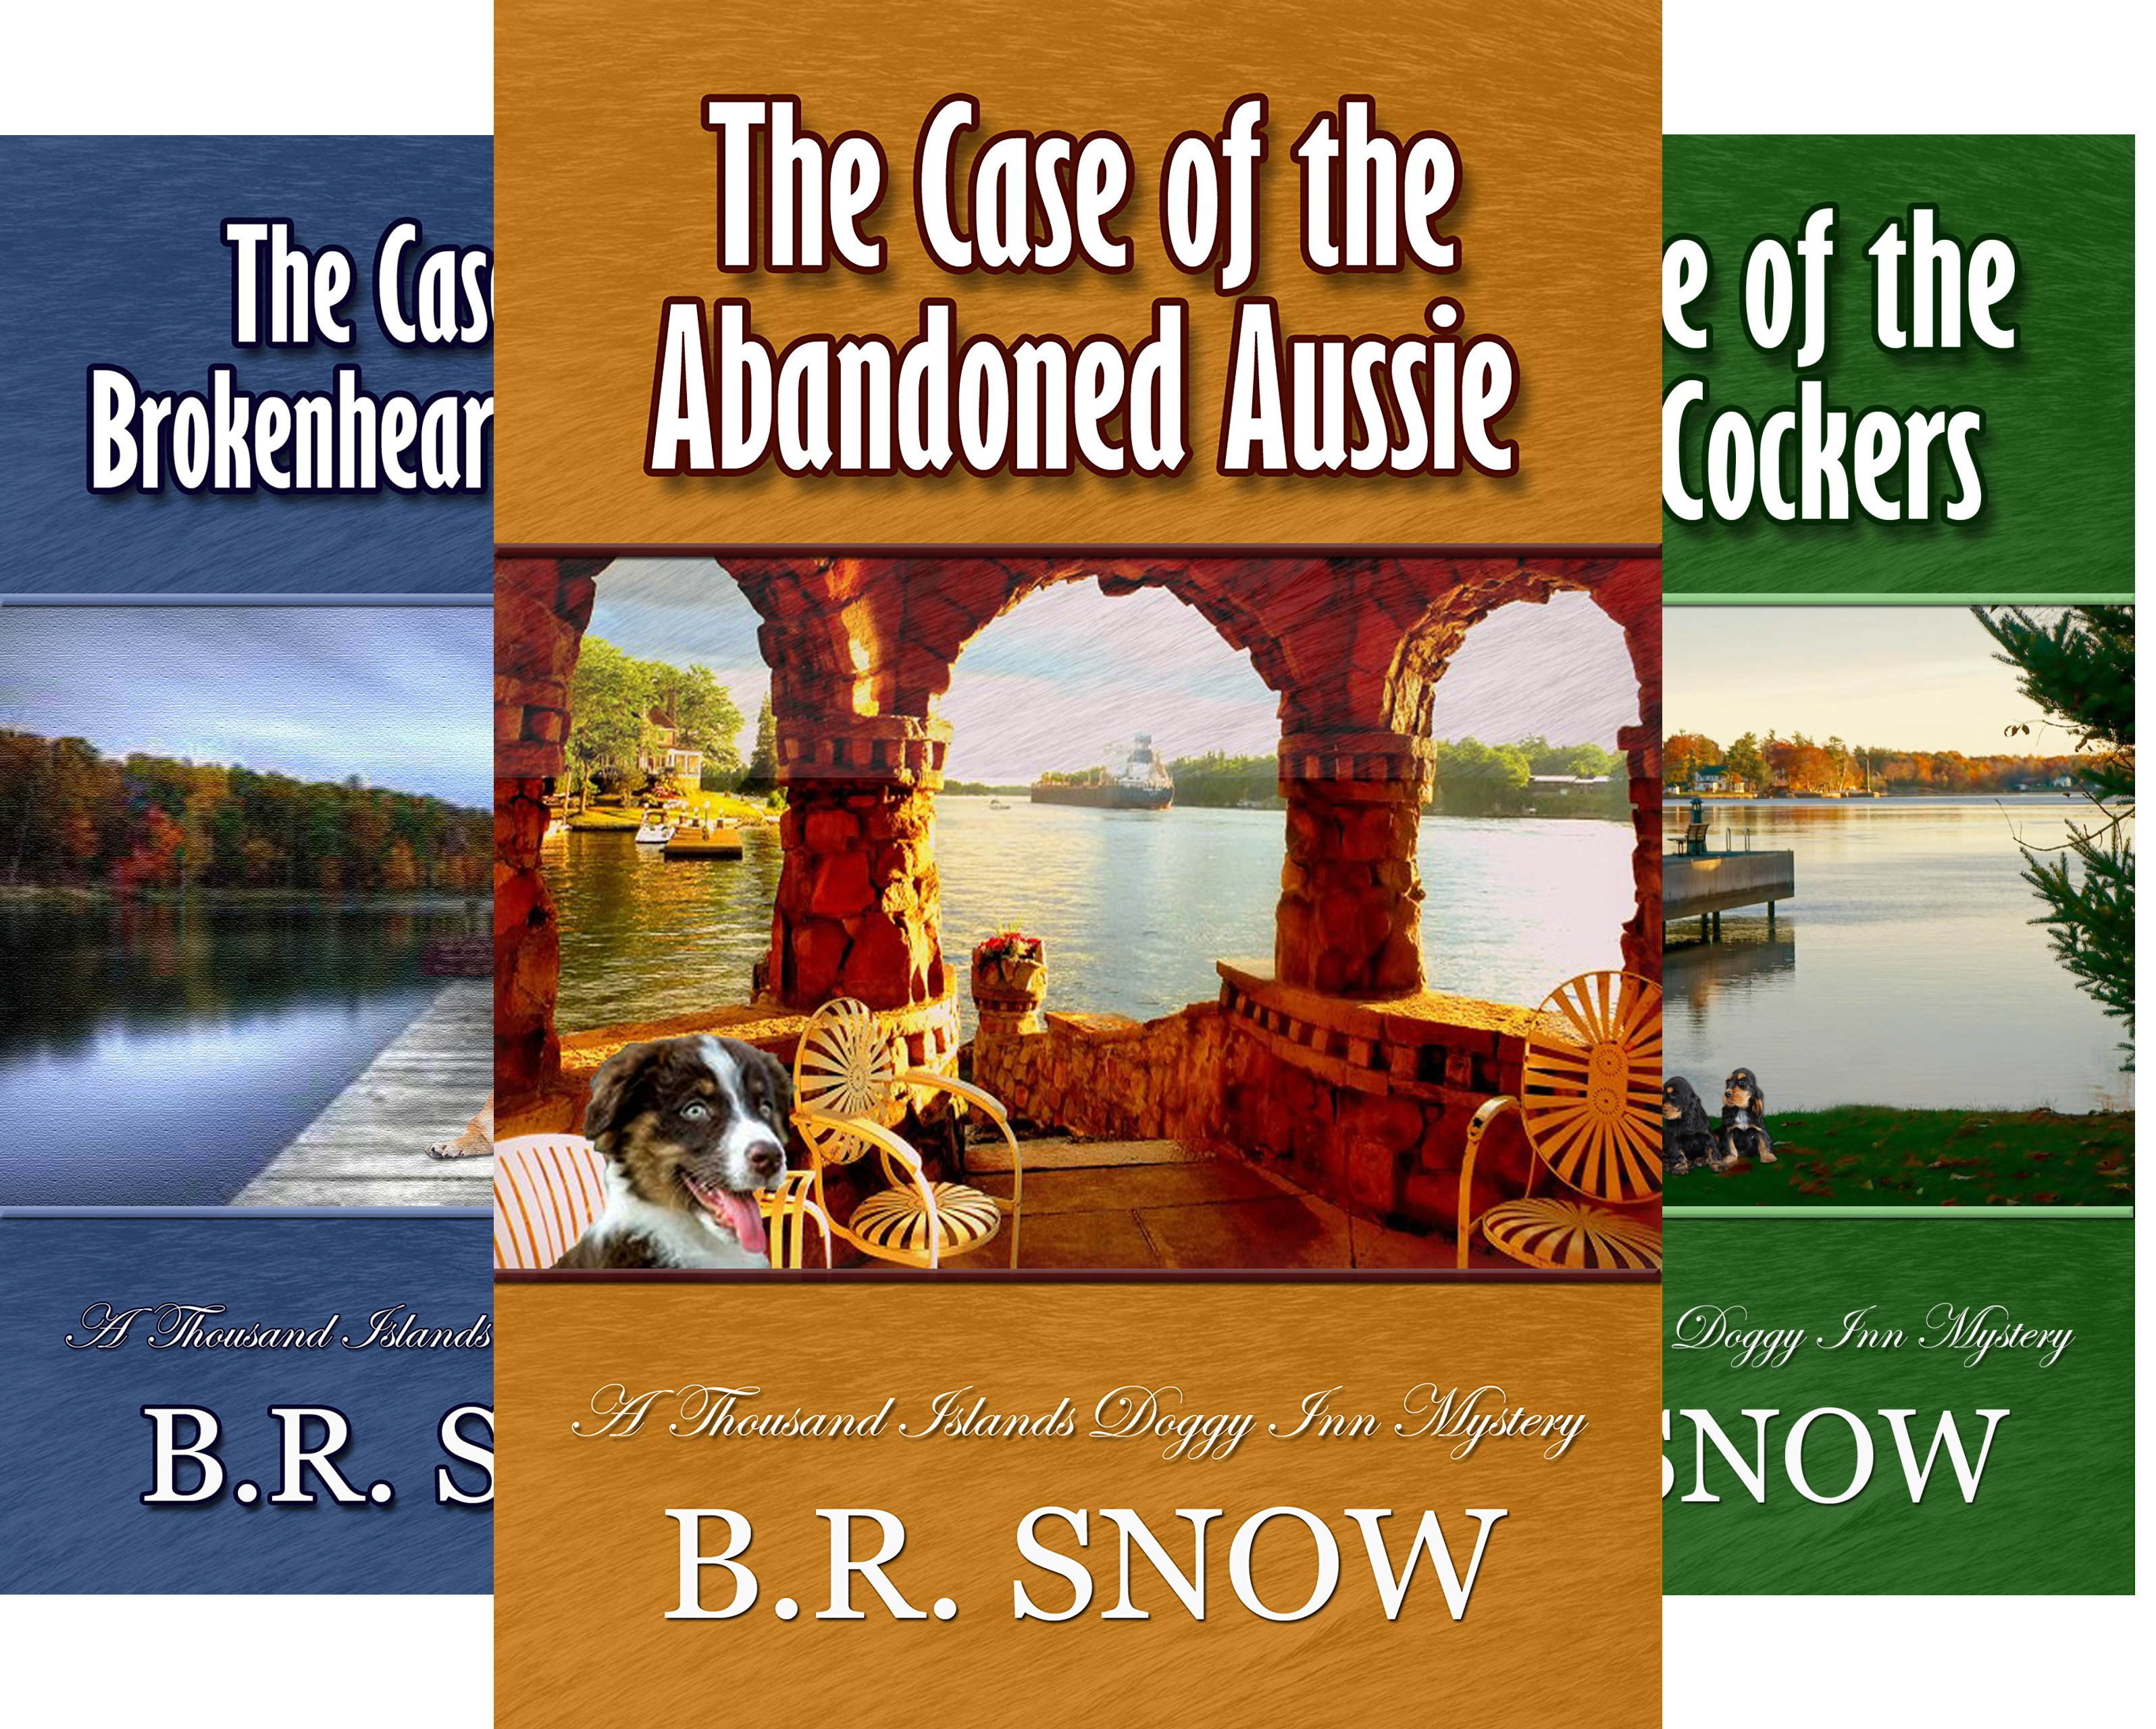 The Thousand Islands Doggy Inn Mysteries (9 Book Series)